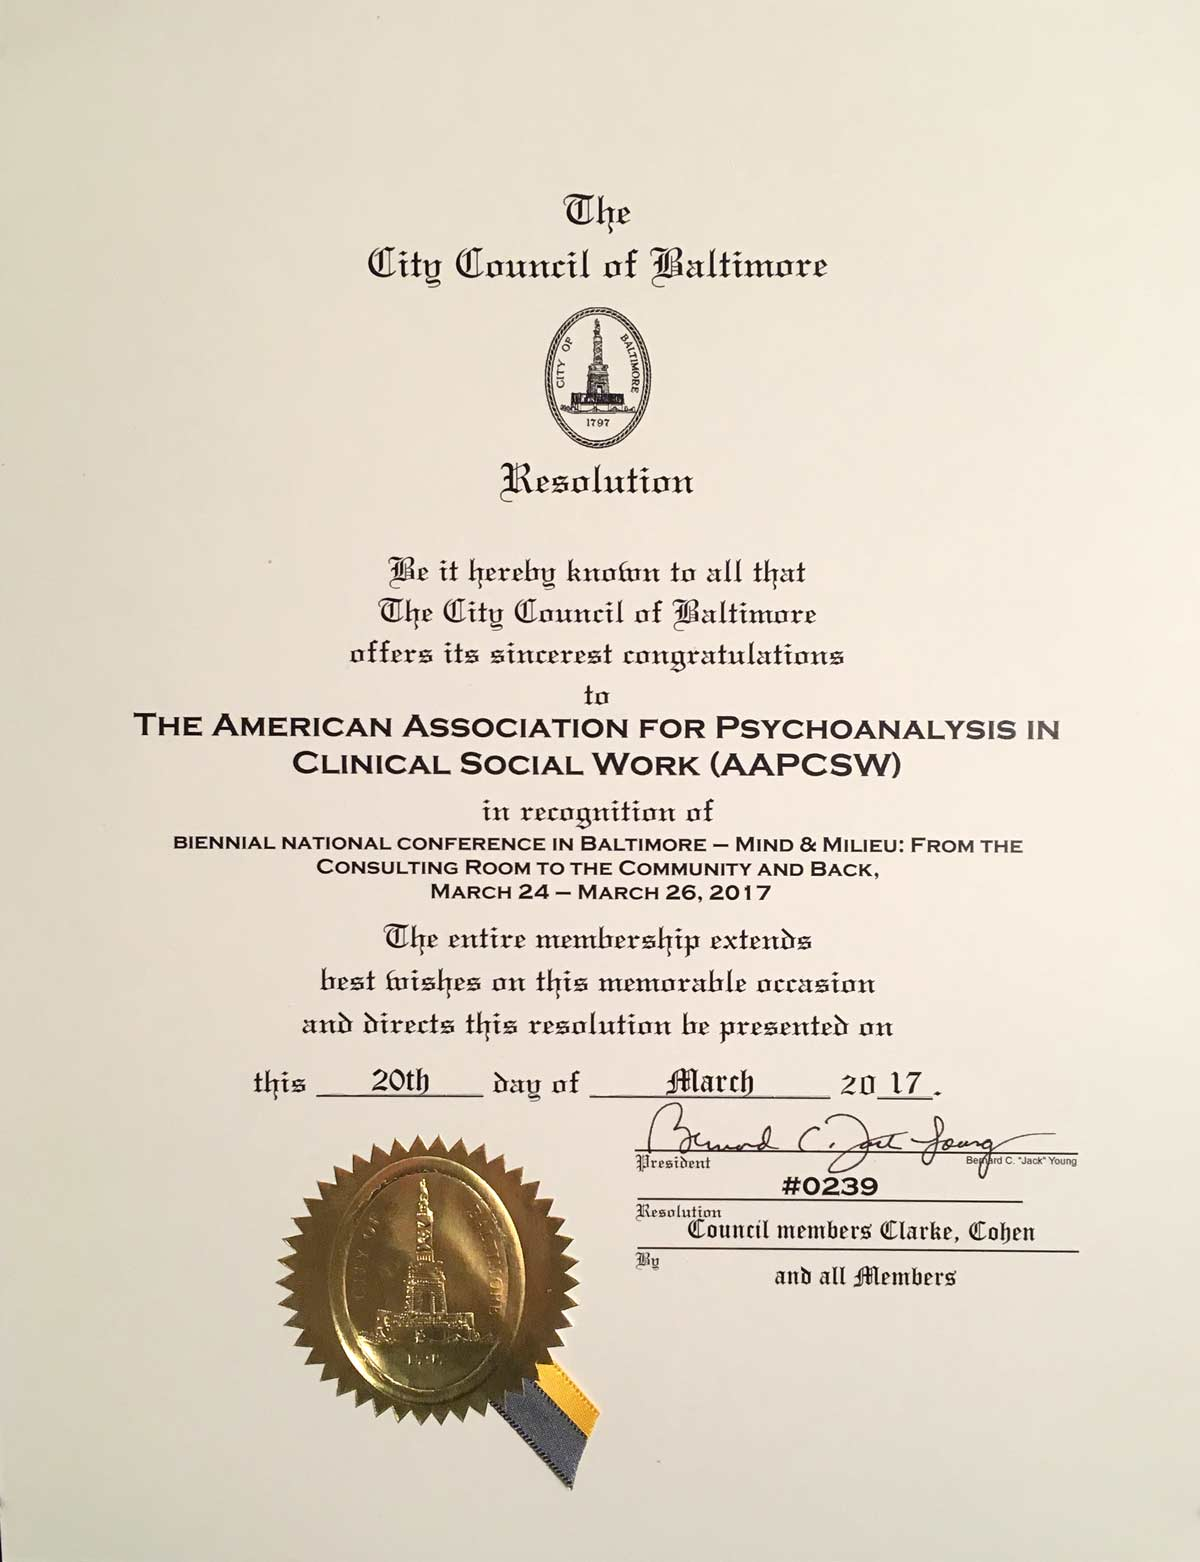 Photo of Baltimore City Council award to AAPCSW